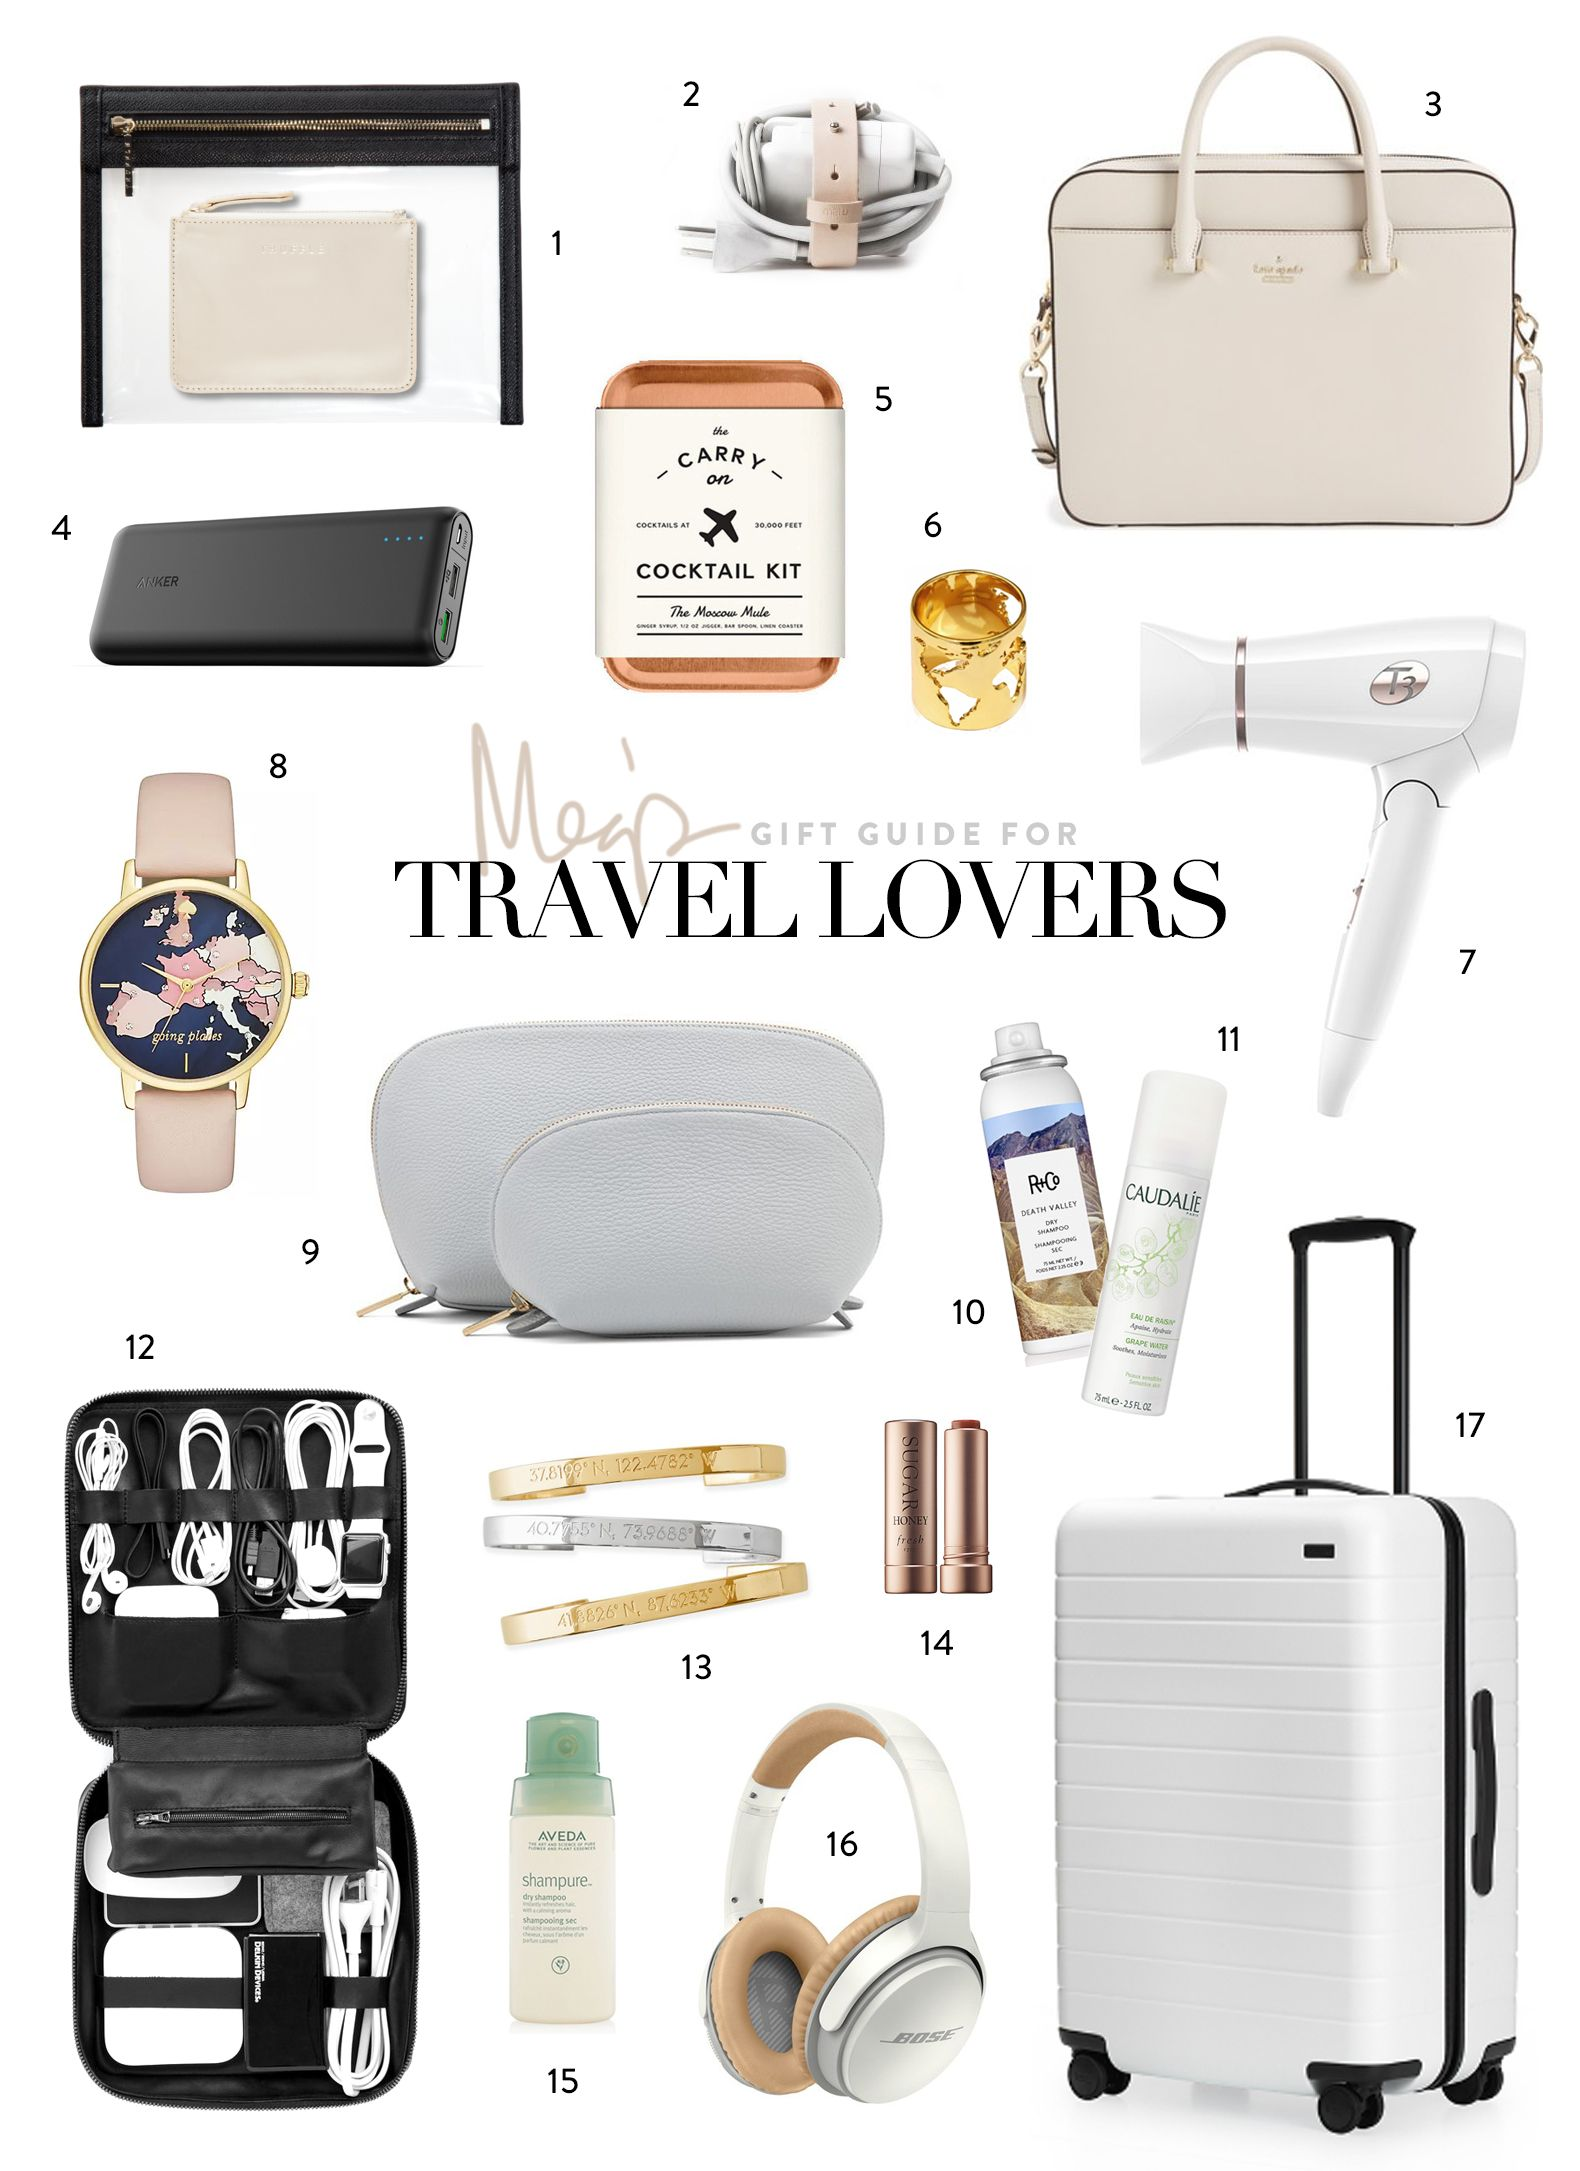 Best way to fold clothes for a trip - Holiday Gift Guide For Travel Lovers